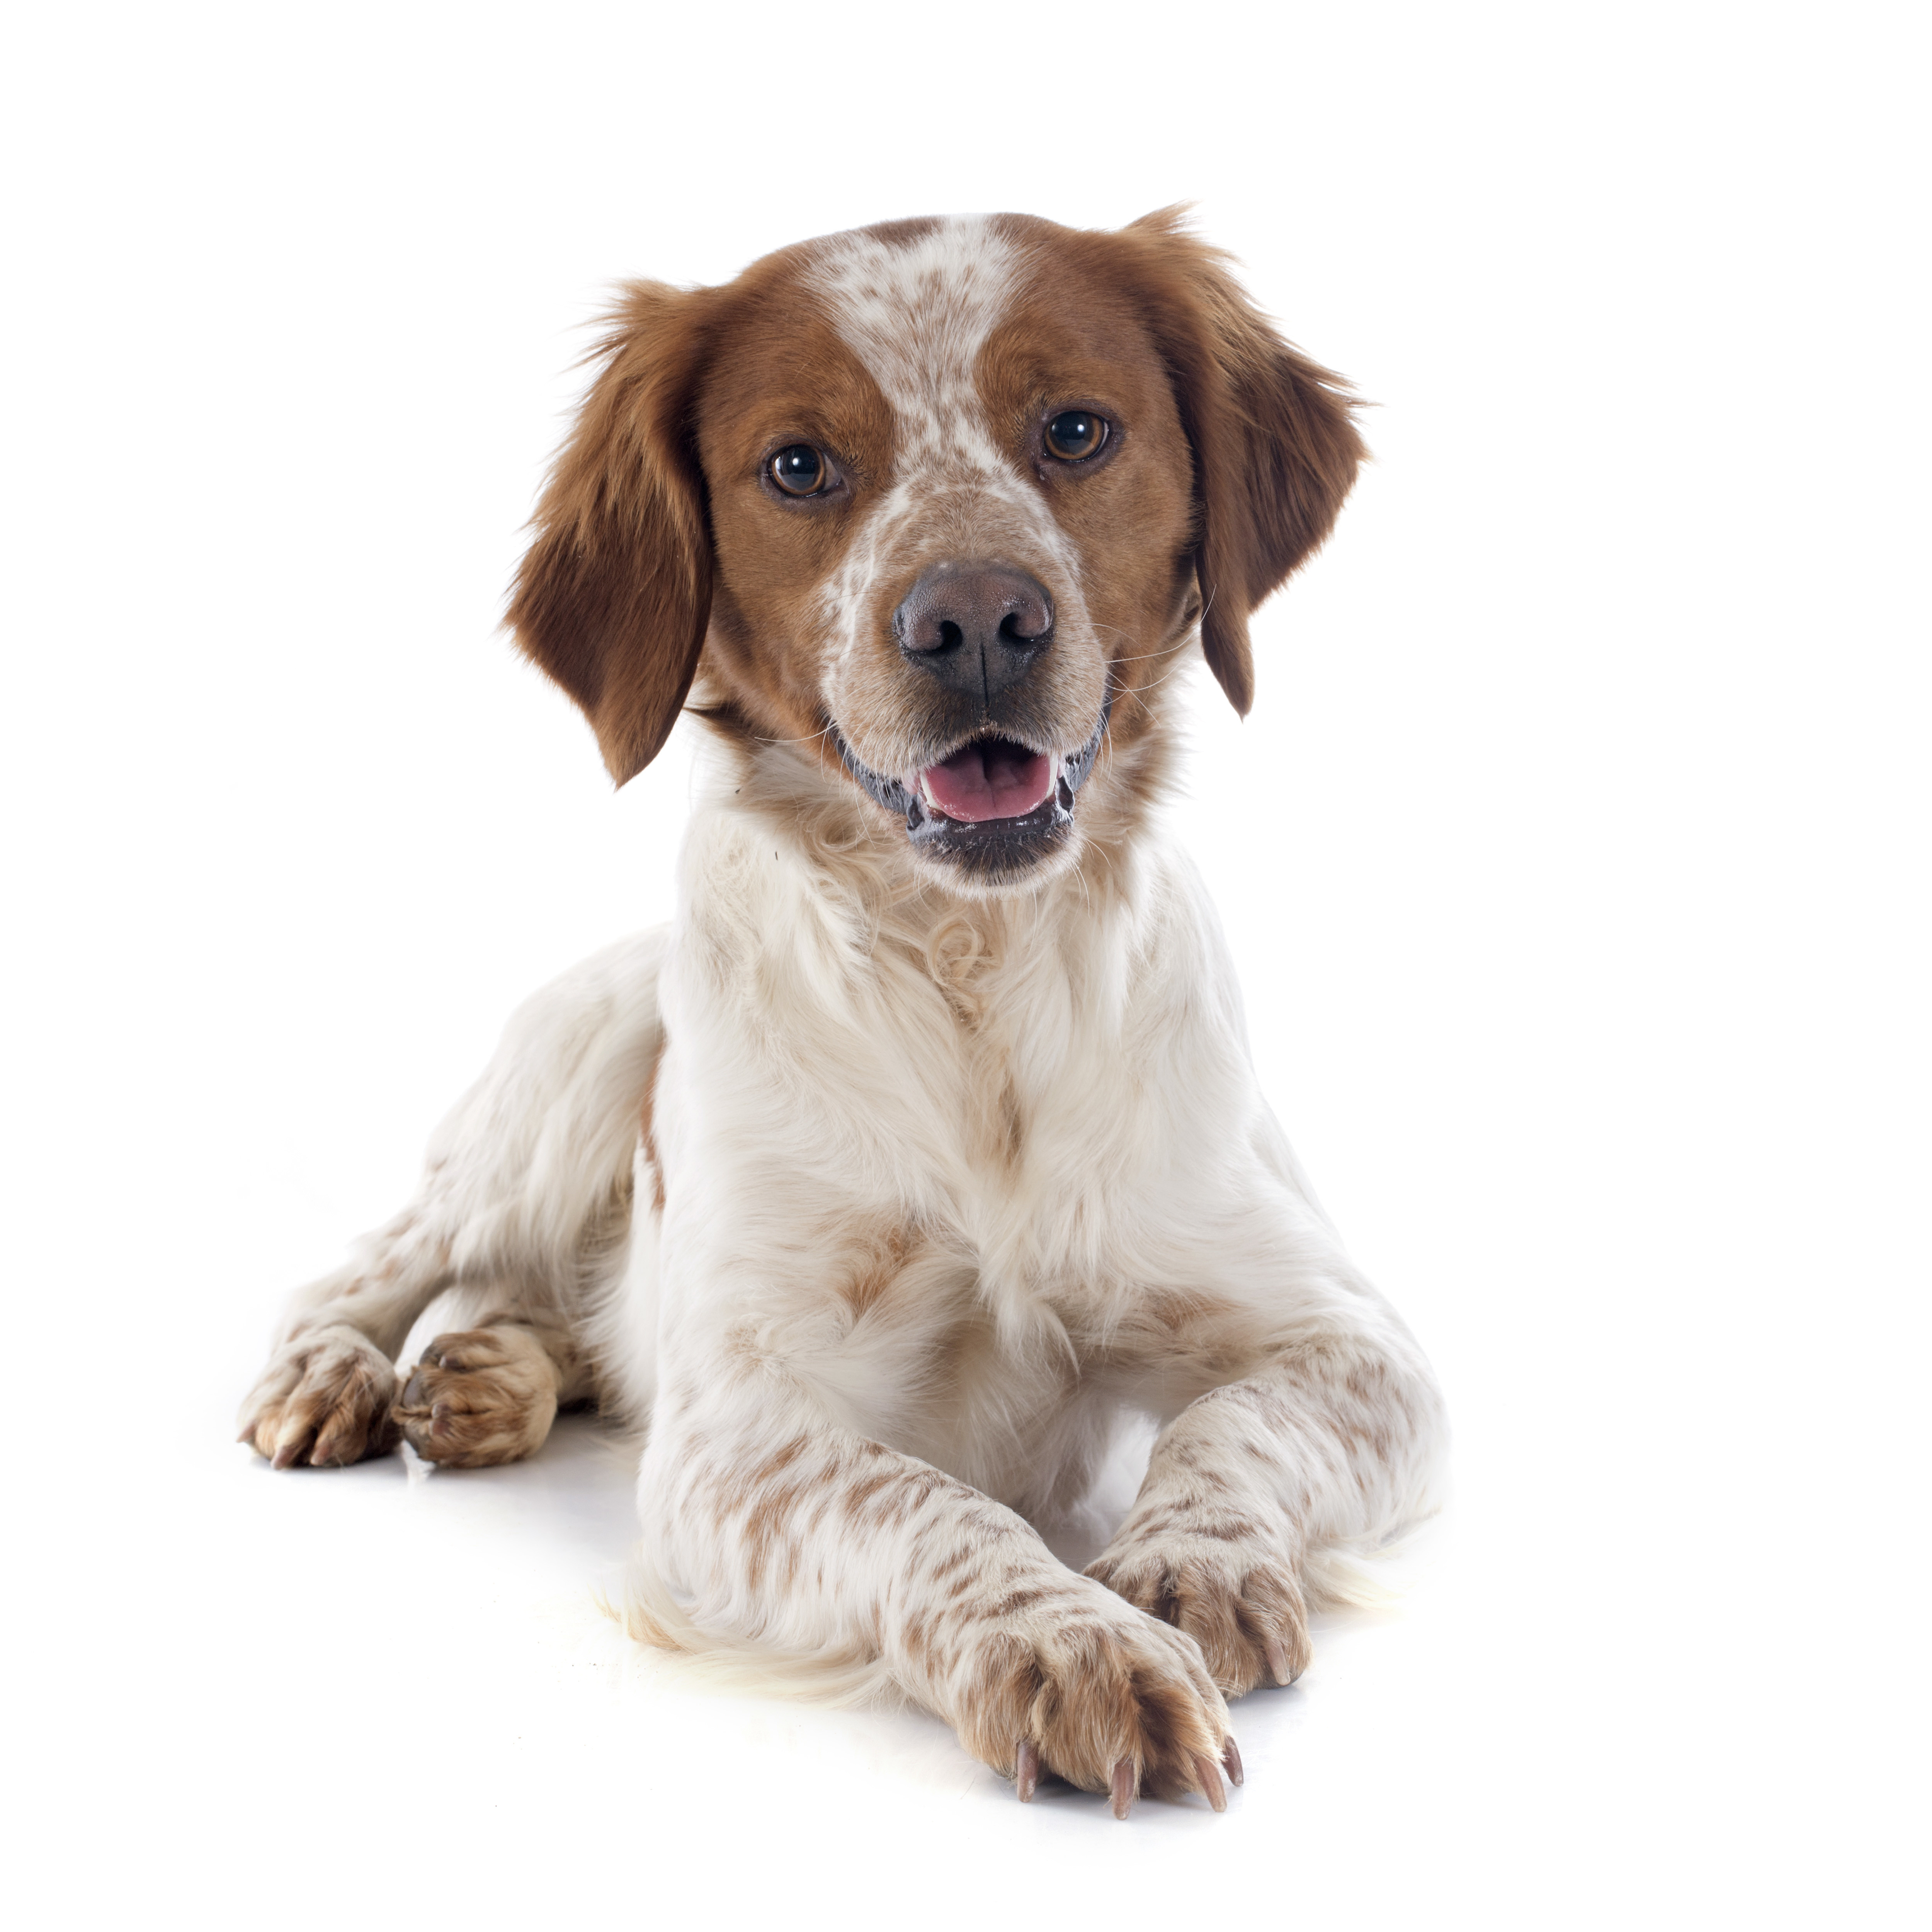 Brittany dog lying down in front of a white background